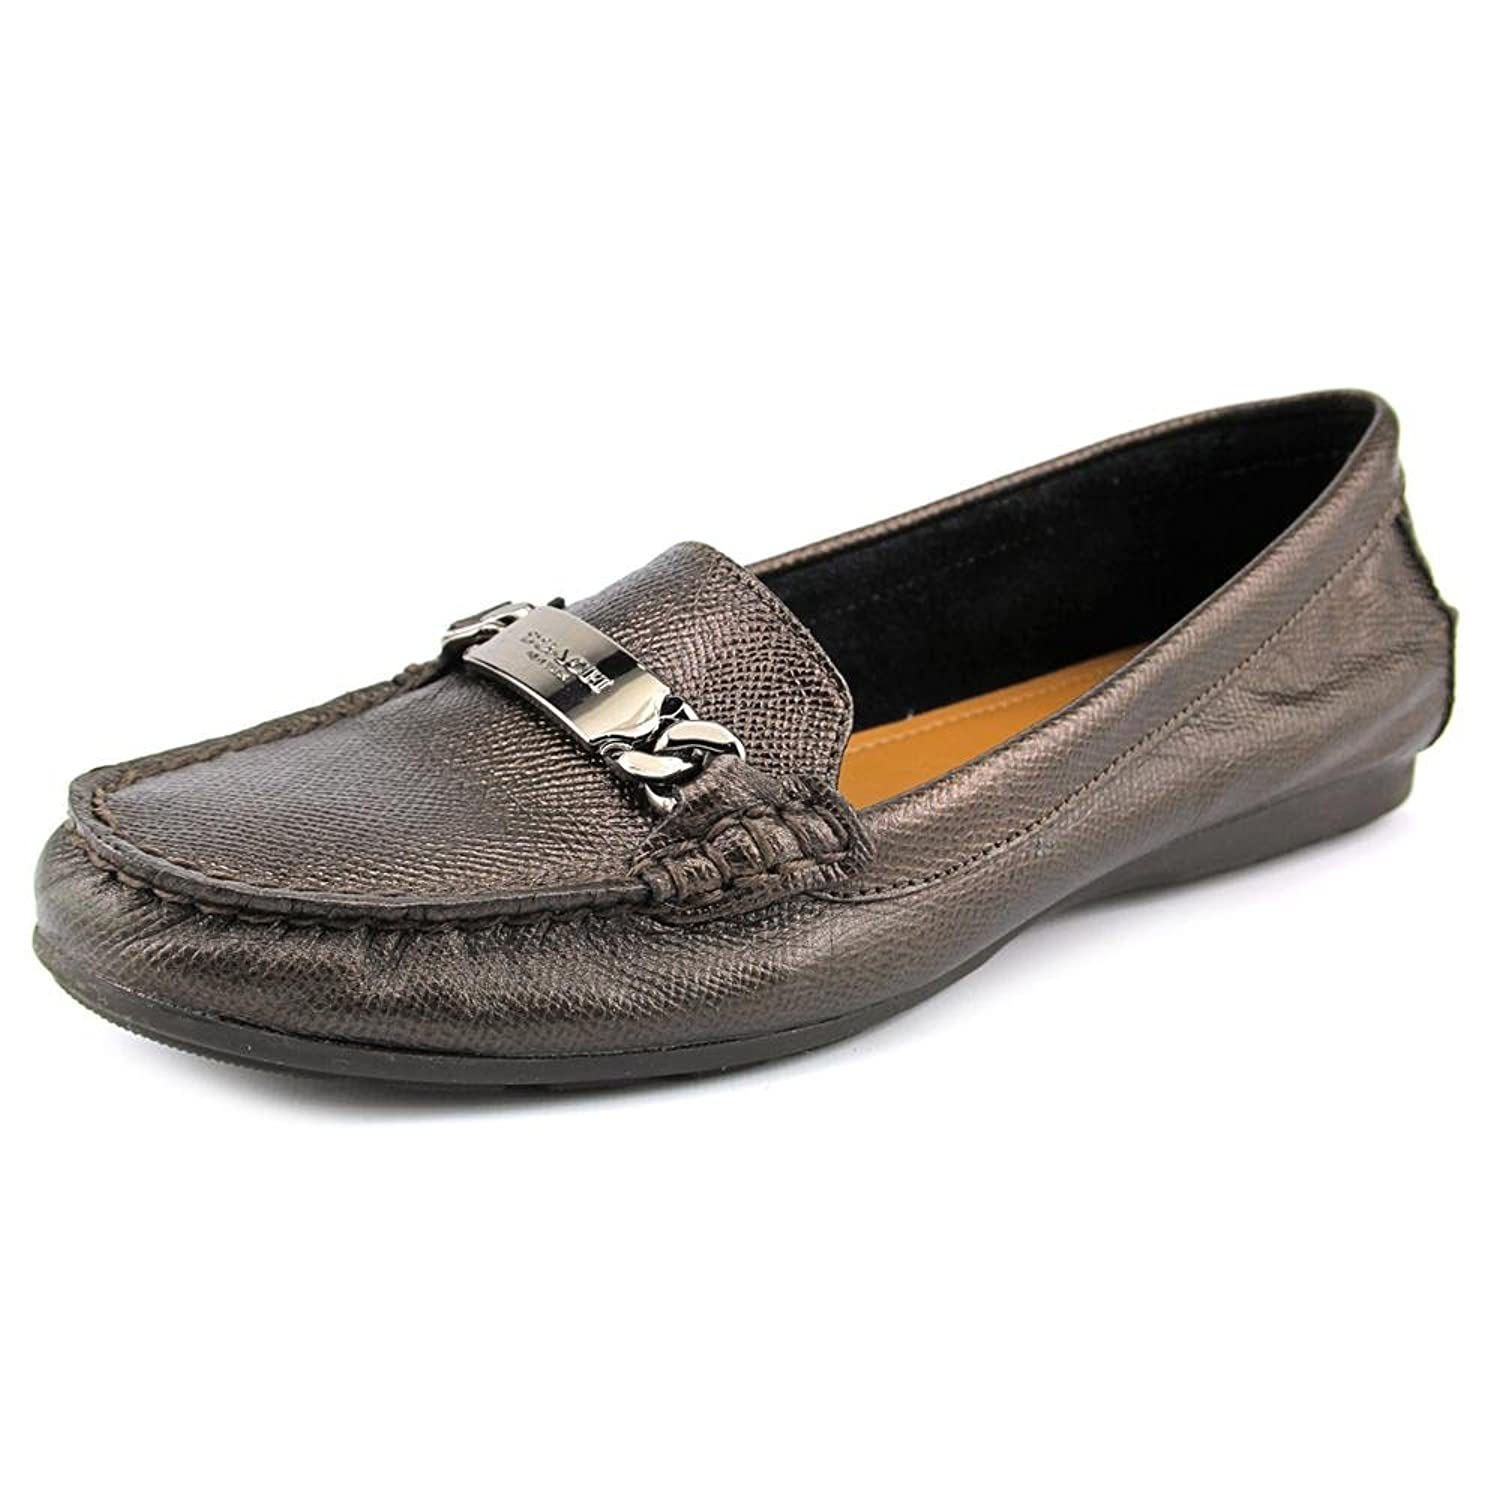 Loafers for Men. Tie your look together with Men's Loafers from Kohl's! Loafers for Men are versatile, and are perfect for any casual or dressy outfit! Kohl's features many of the most popular brands in men's shoes, including mens Nunn Bush loafers. You'll be comfortable at any formal occasion in .